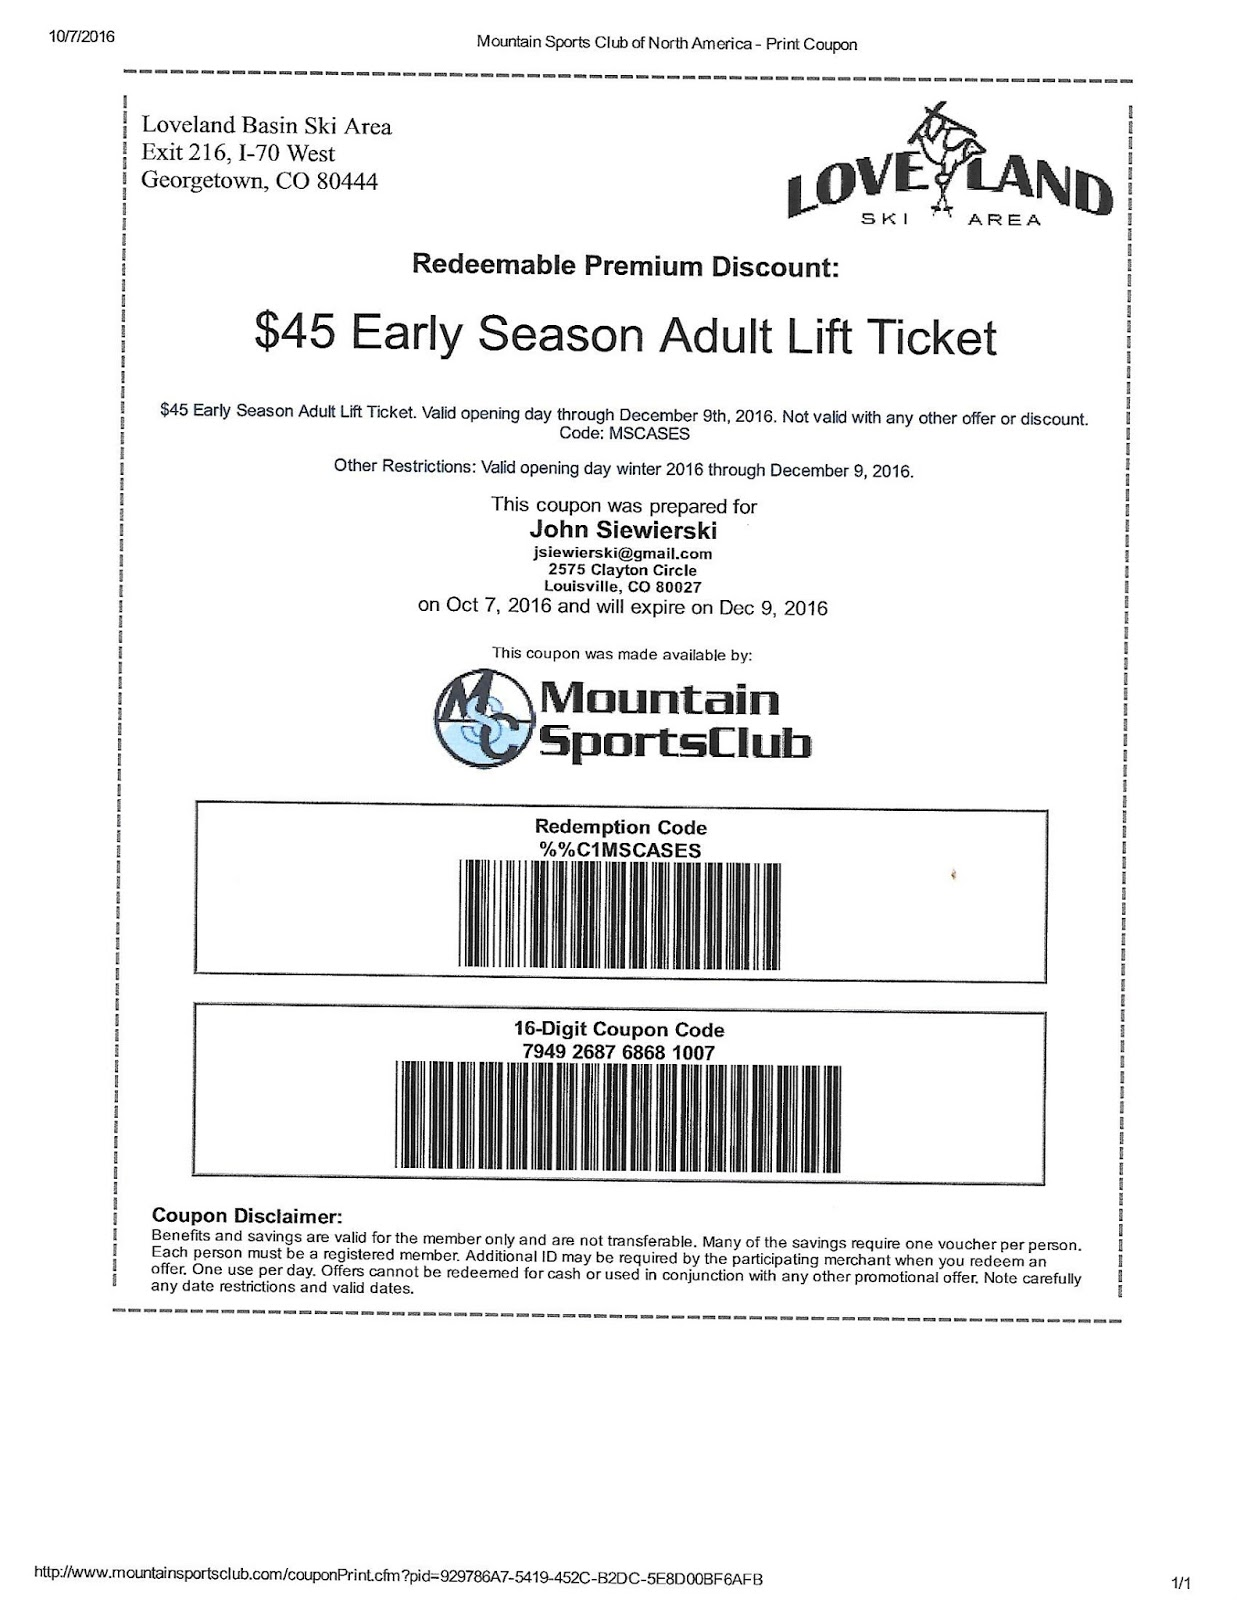 MountainSportsClub - Discount Ski And Snowboard Lift Tickets ...